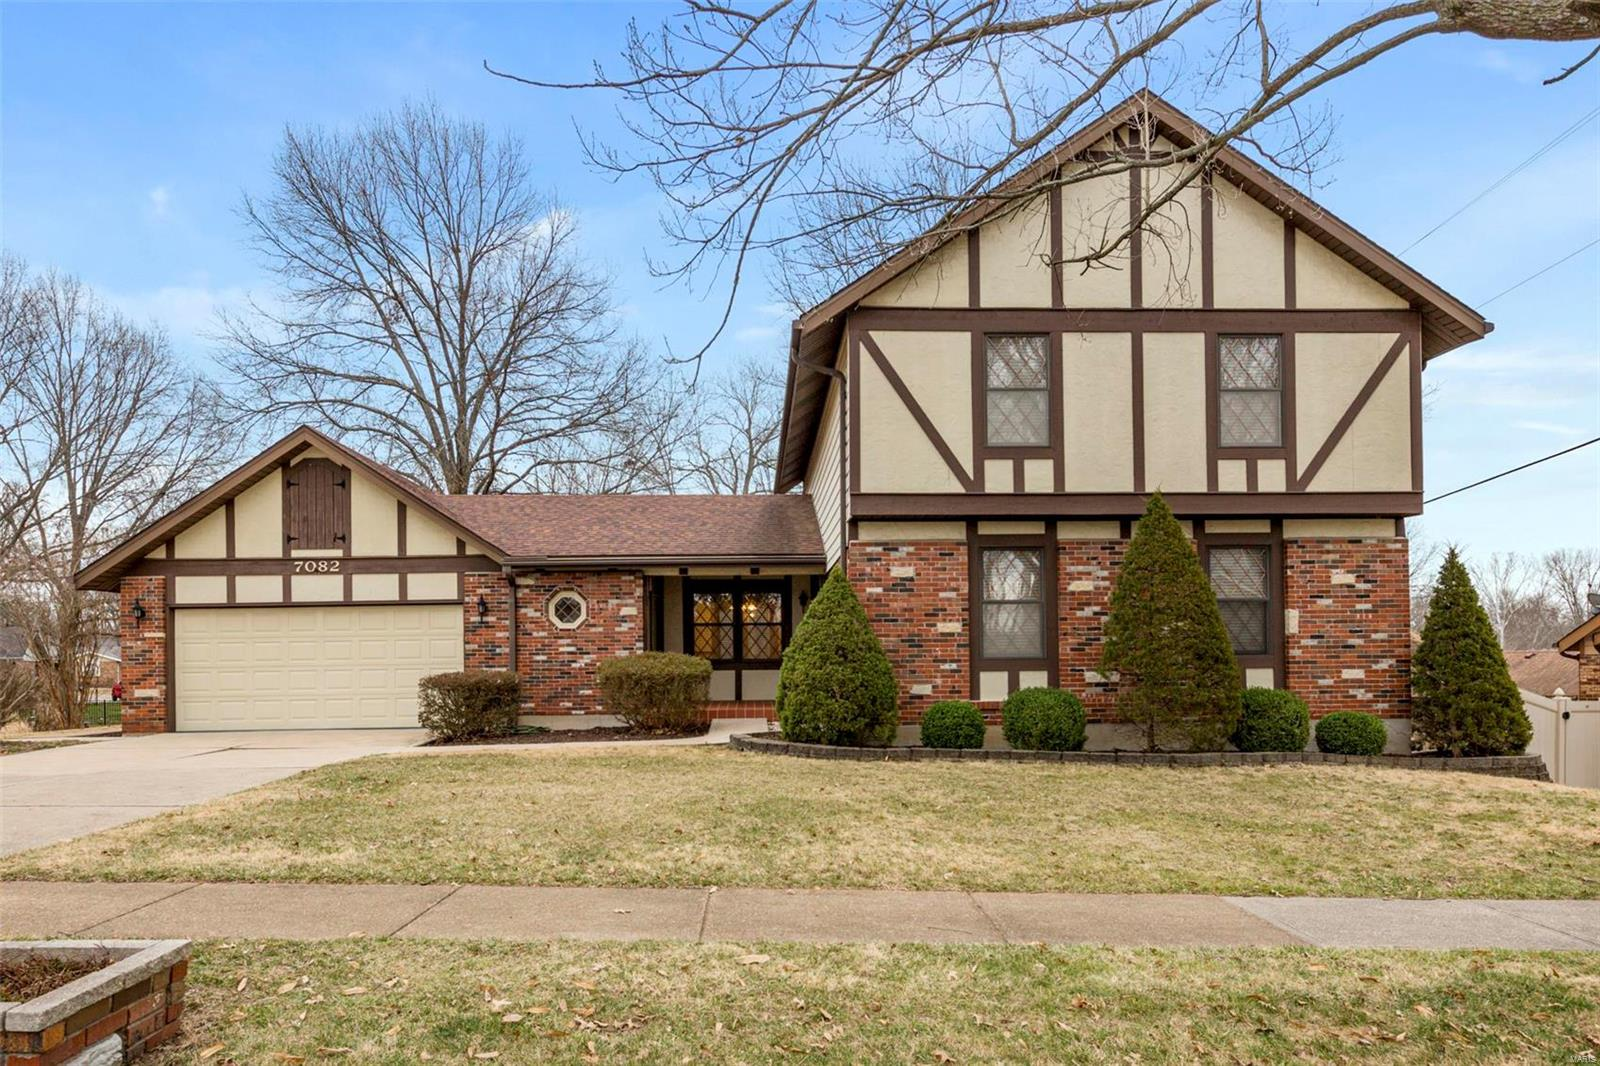 7082 Bumble Bee Property Photo - St Louis, MO real estate listing